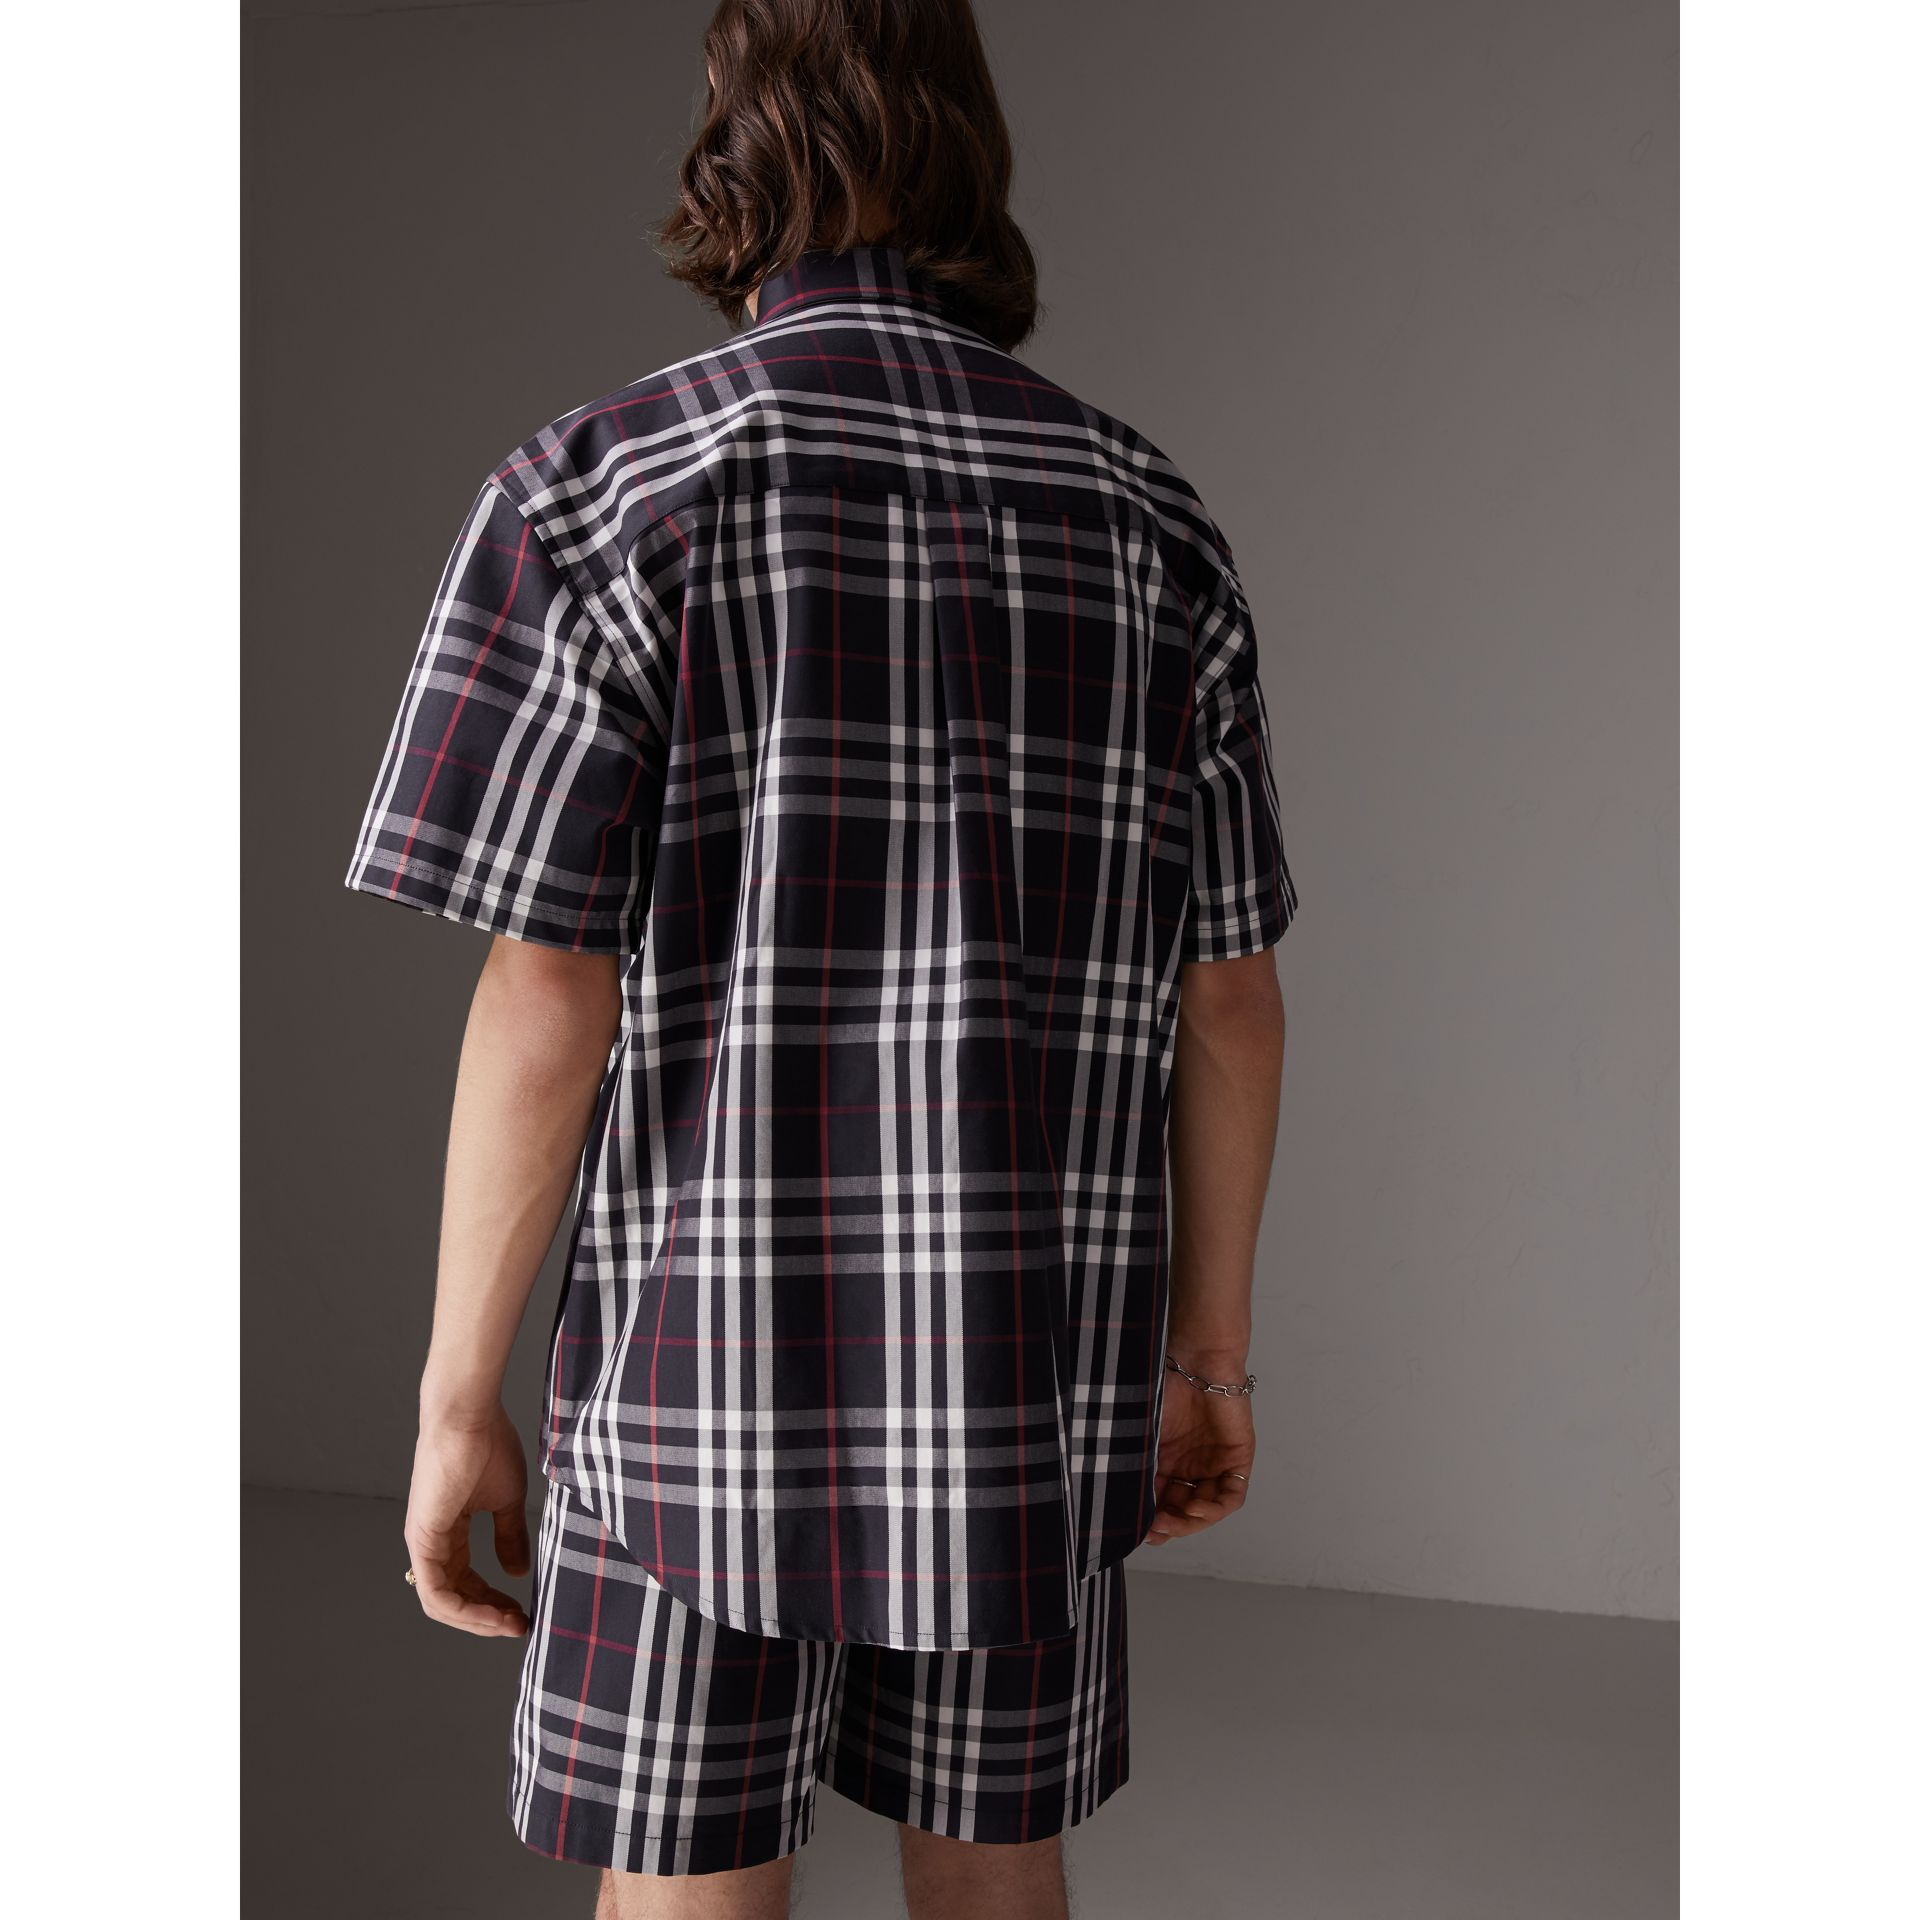 Gosha x Burberry Short-sleeve Check Shirt in Navy | Burberry Canada - gallery image 5